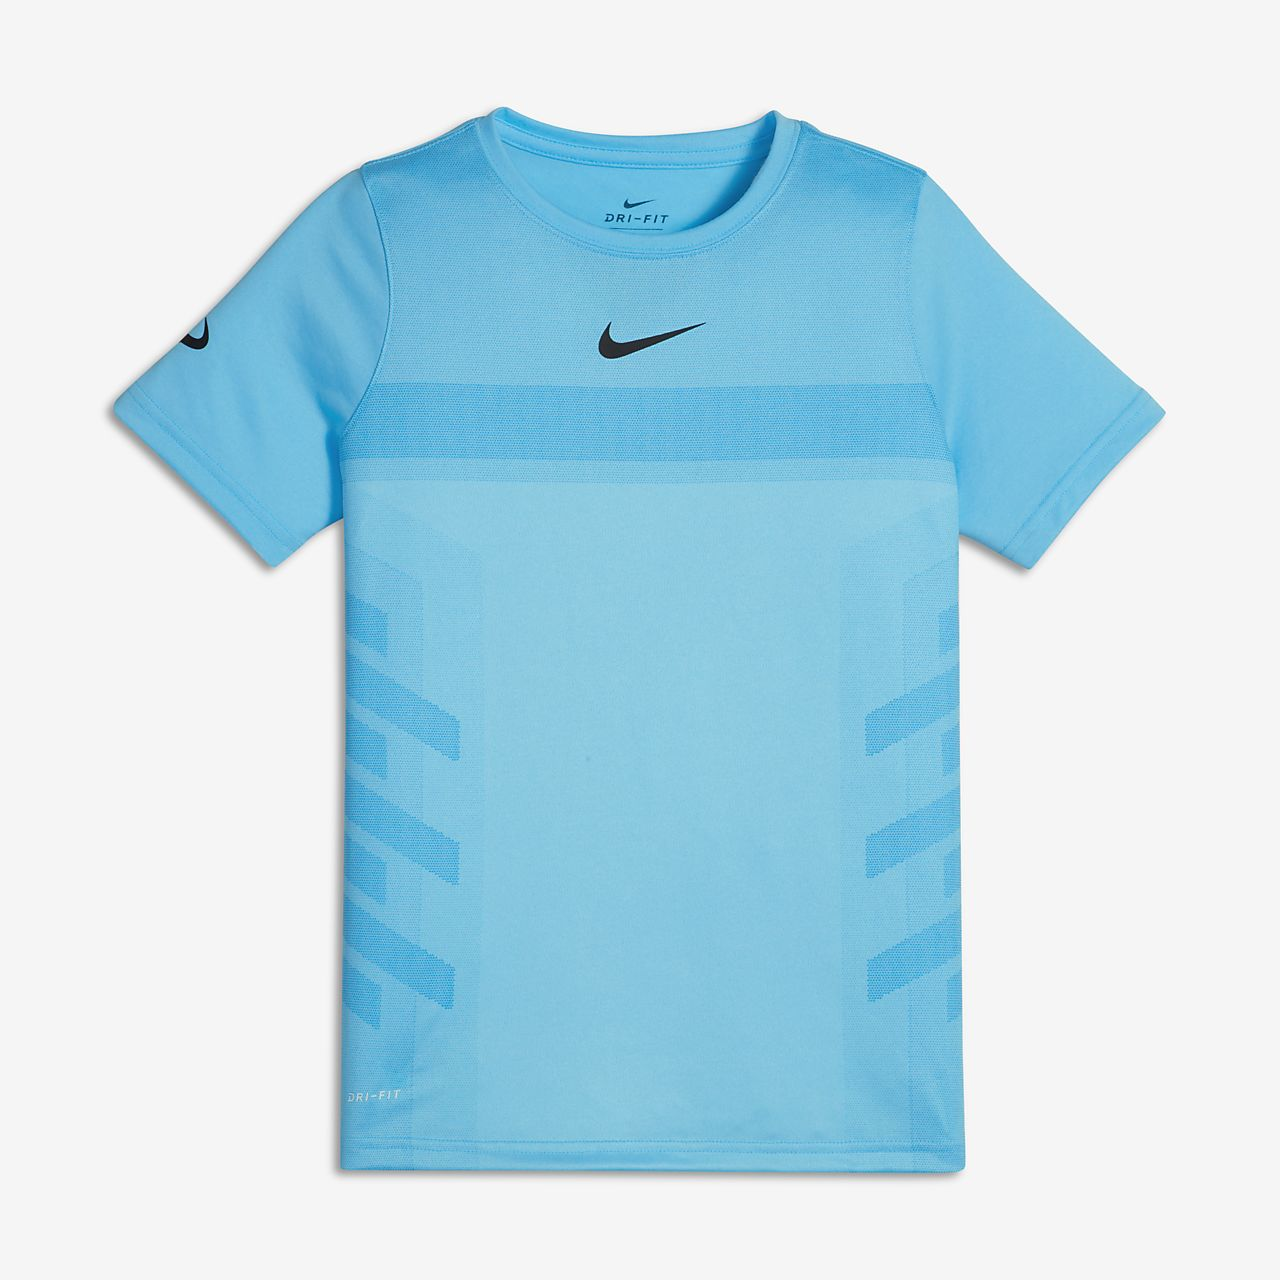 98aa9e4ef2 NikeCourt Rafa Older Kids' (Boys') Tennis T-Shirt